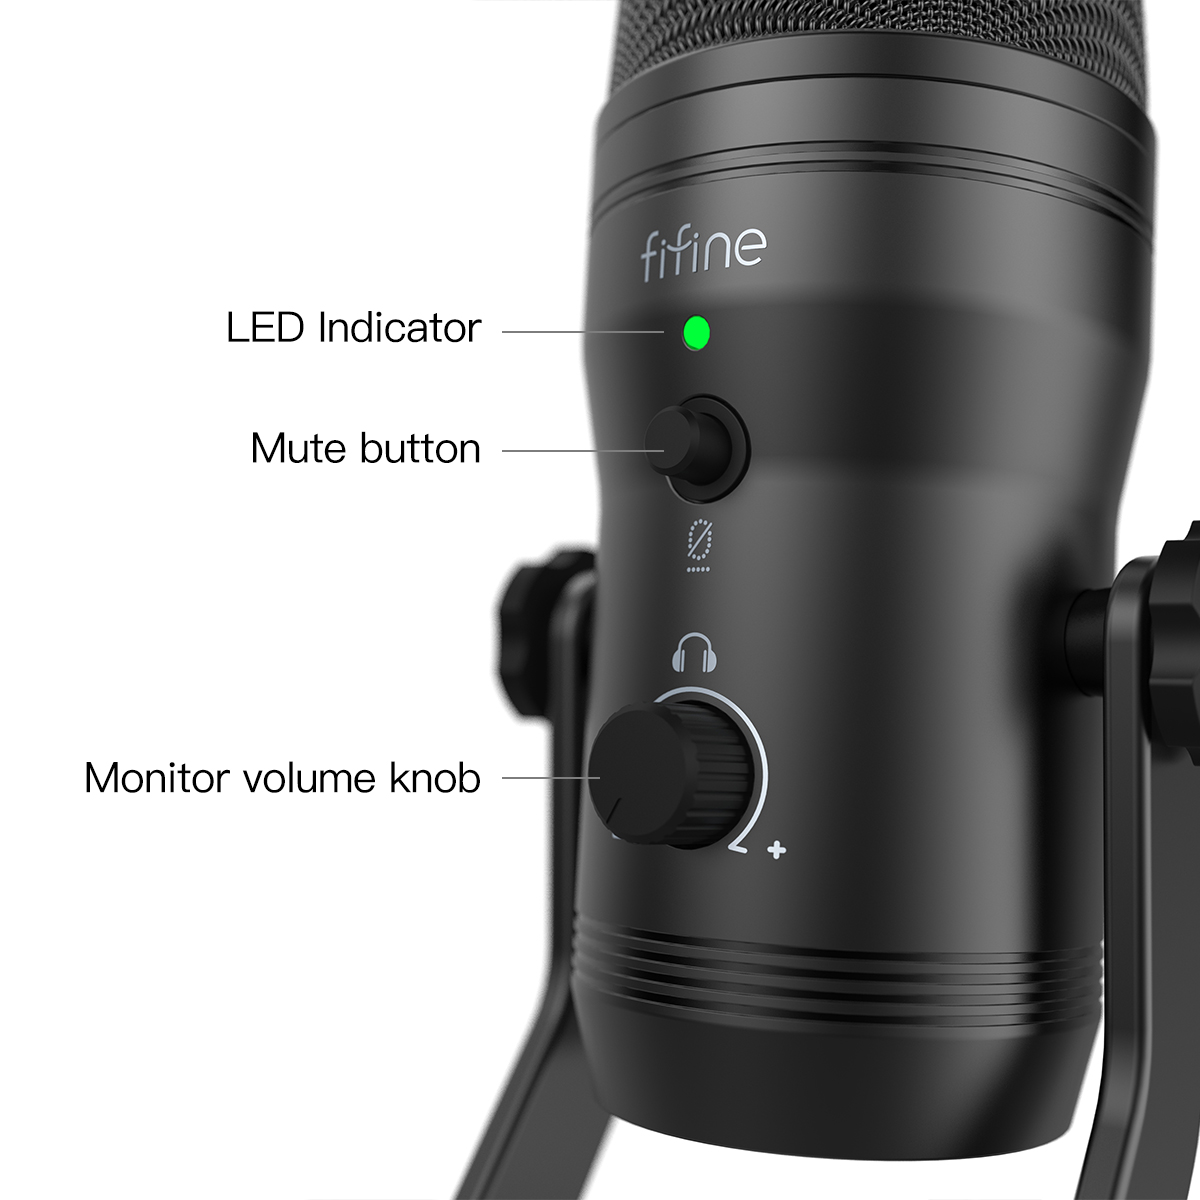 FIFINE K690 USB MIC WITH FOUR POLAR PATTERNS, GAIN DIALS, A LIVE MONITORING JACK & A MUTE BUTTON 8